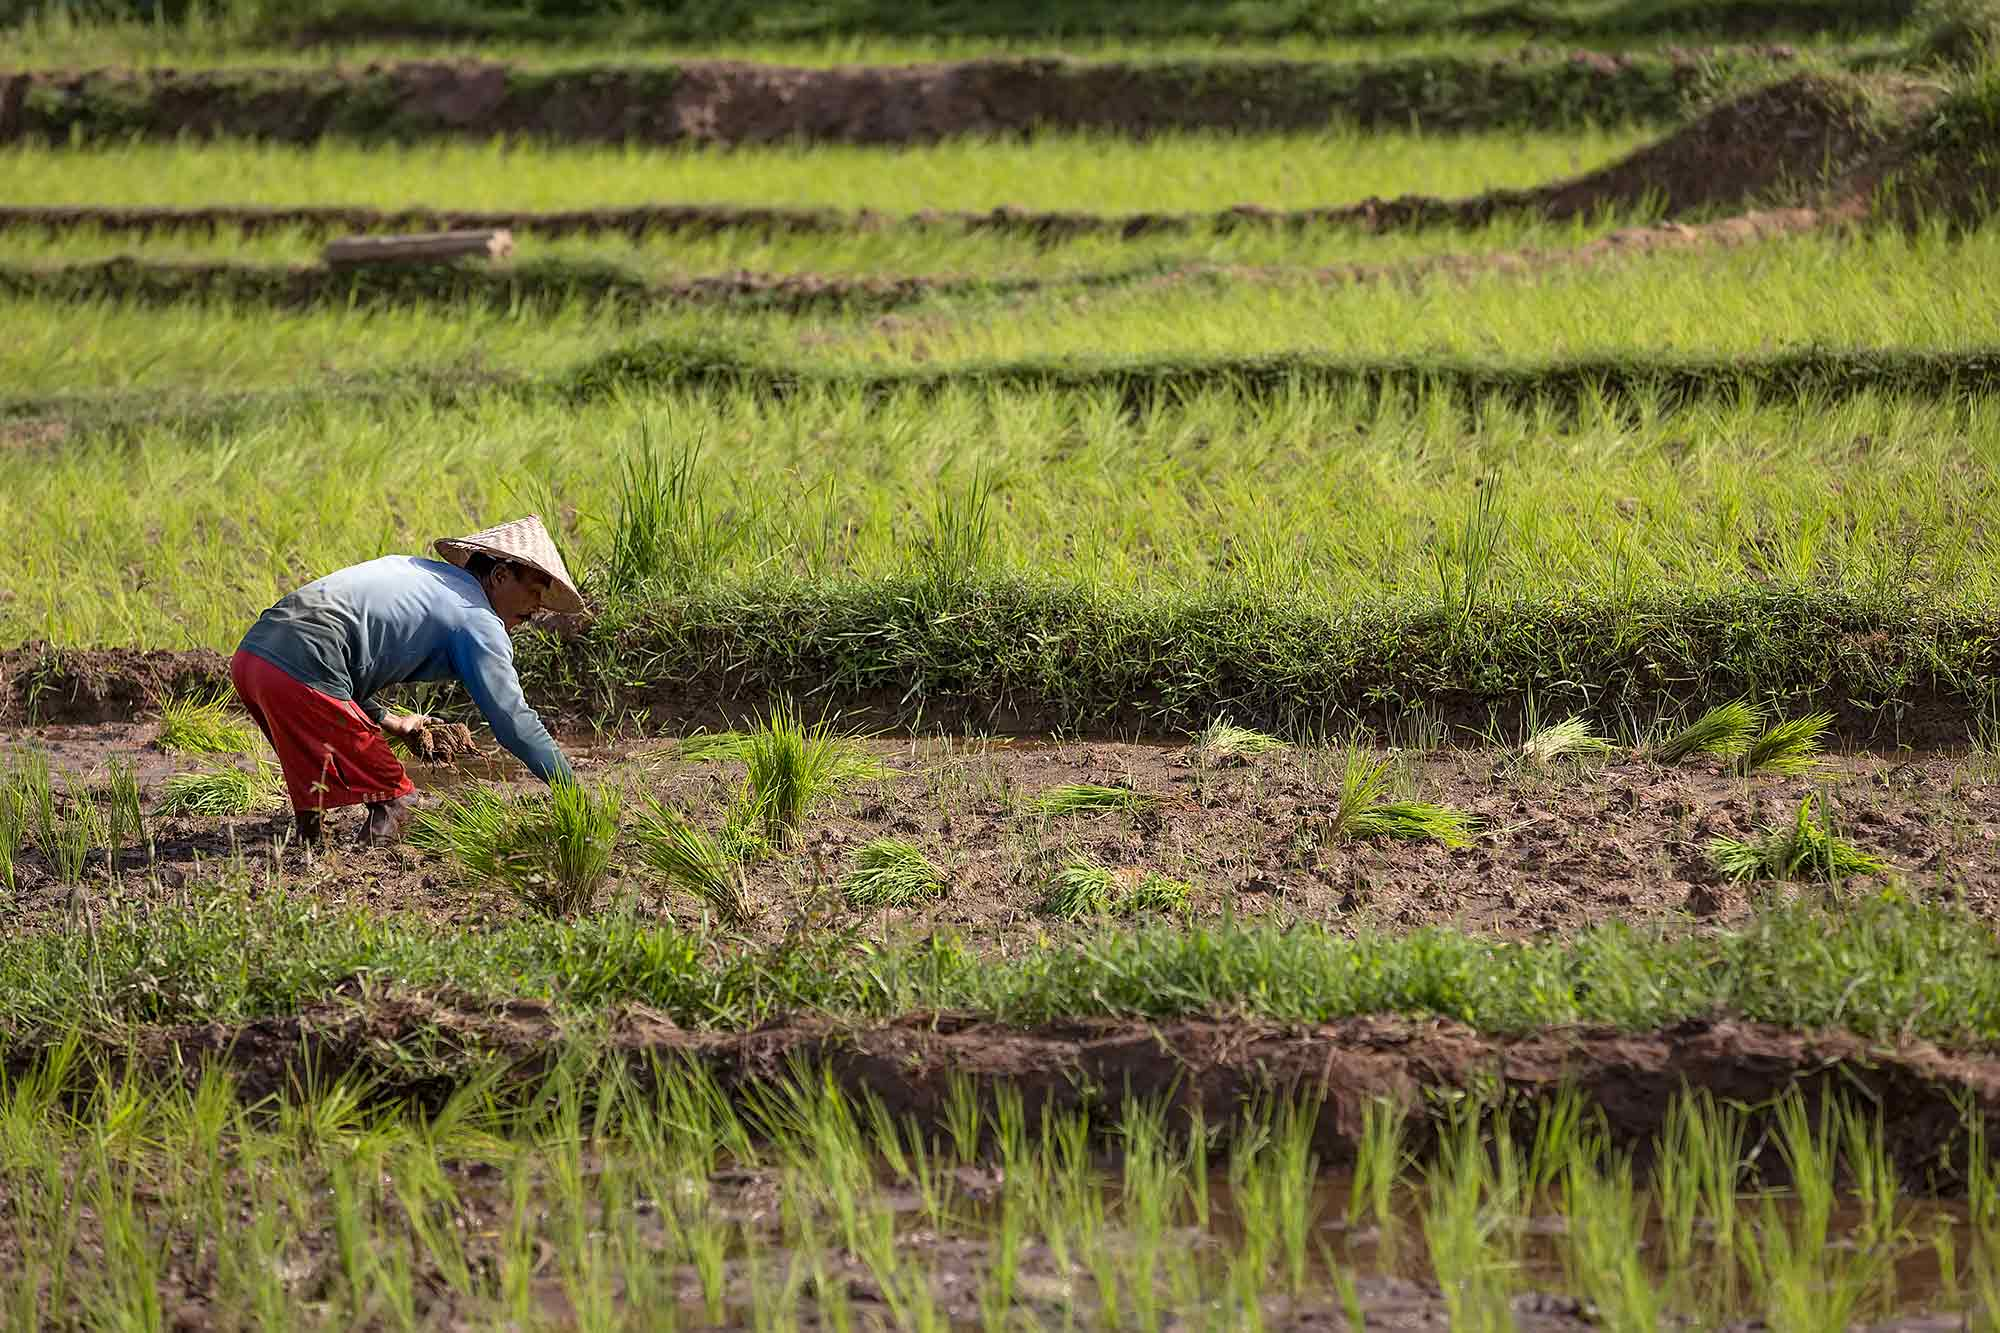 Working in the rice fields in West Sumatra, Indonesia. © Ulli Maier & Nisa Maier